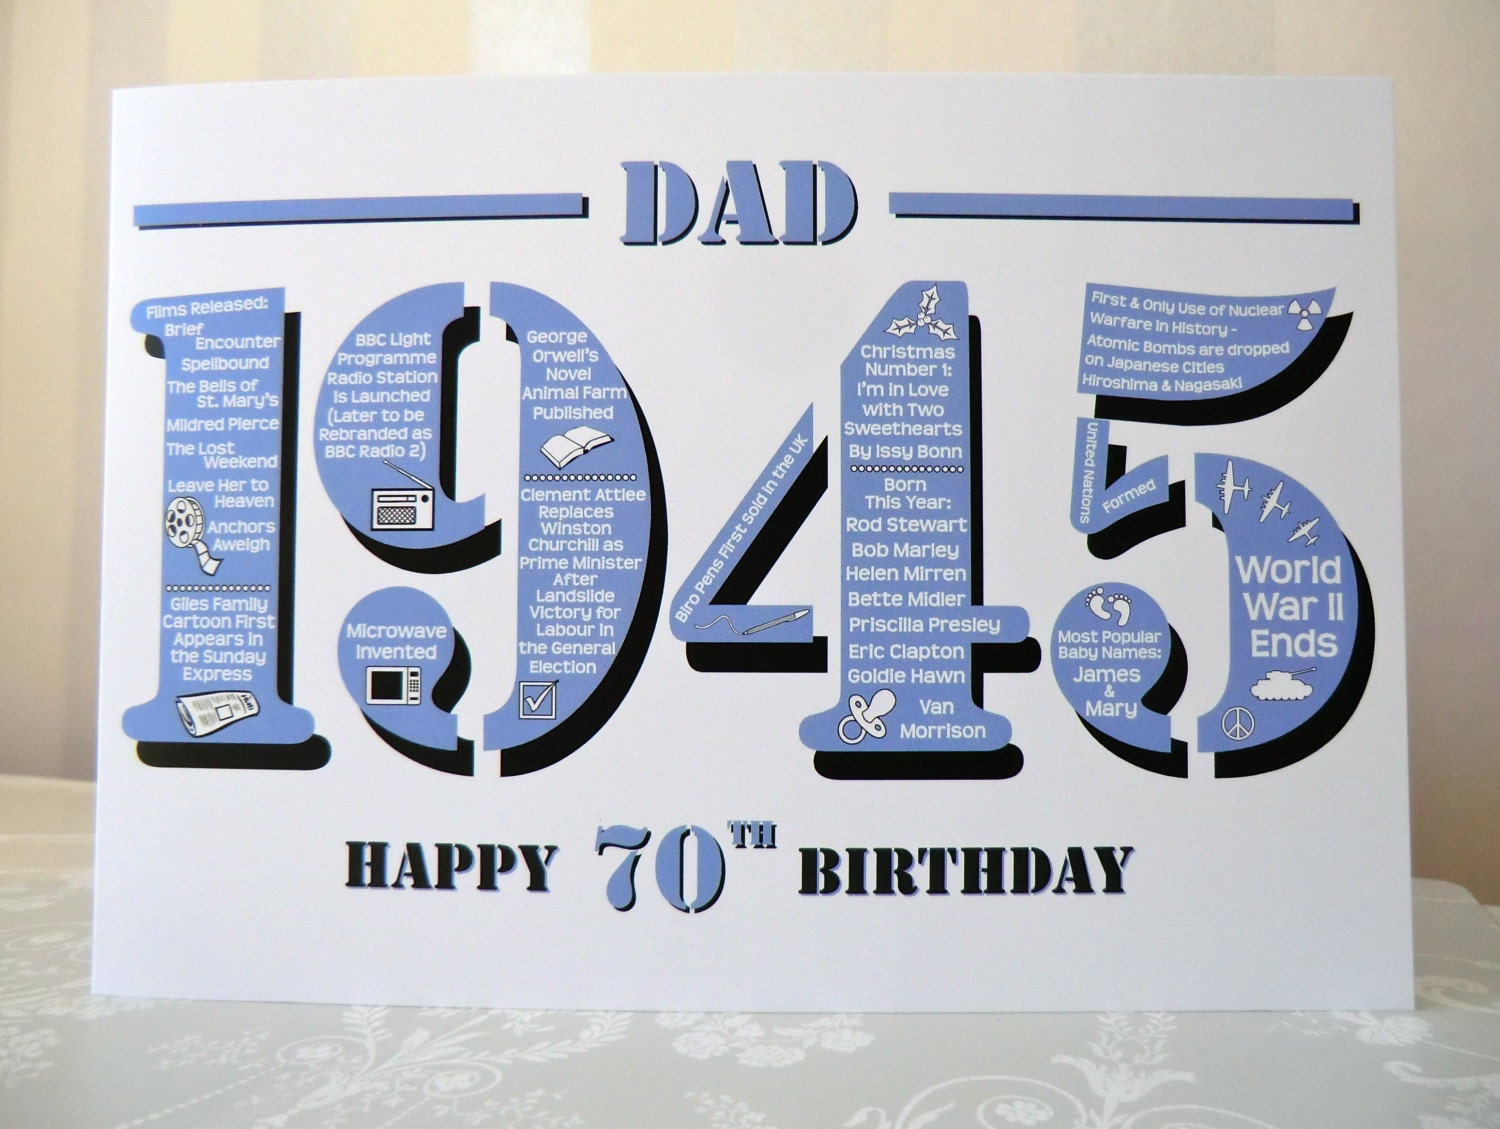 70th Birthday Decorations For Dad Image Inspiration of Cake and